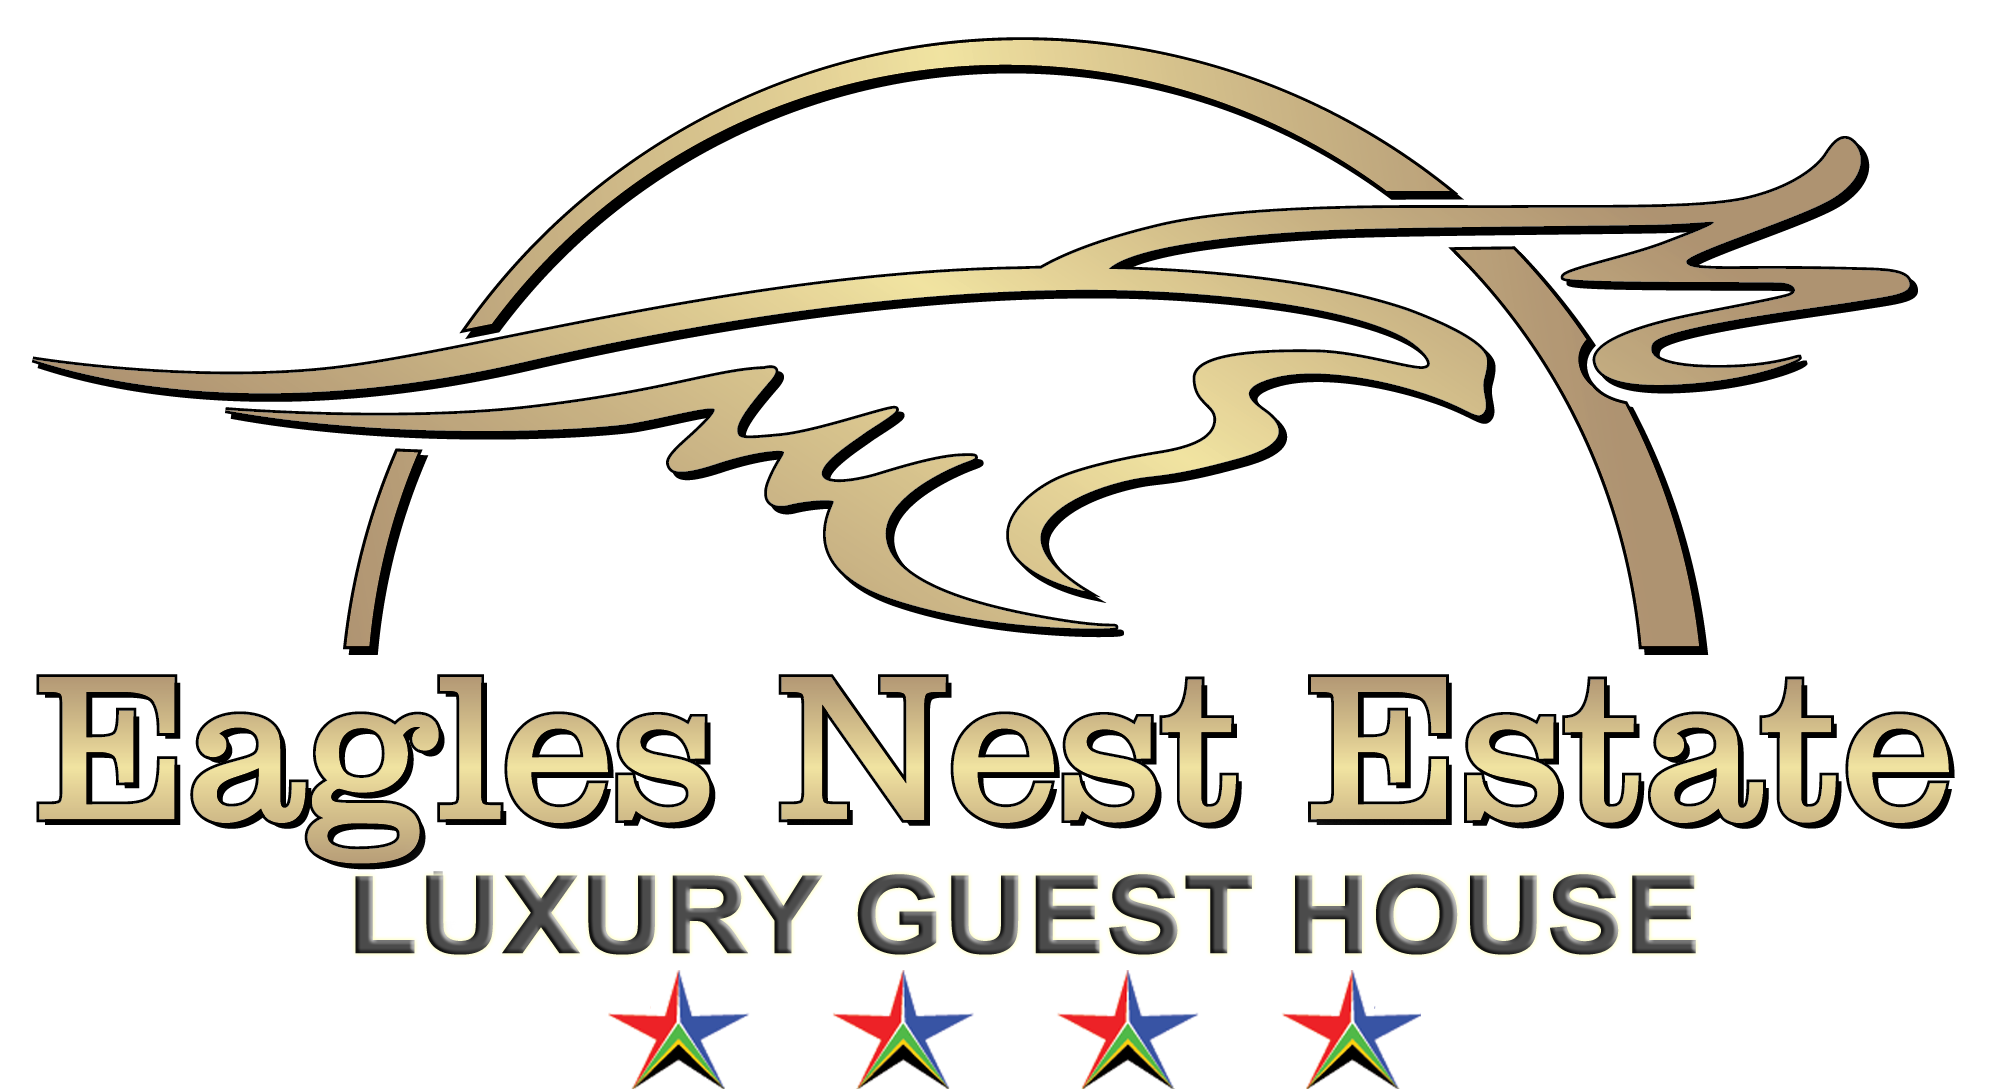 Eagles Nest Estate - Logo